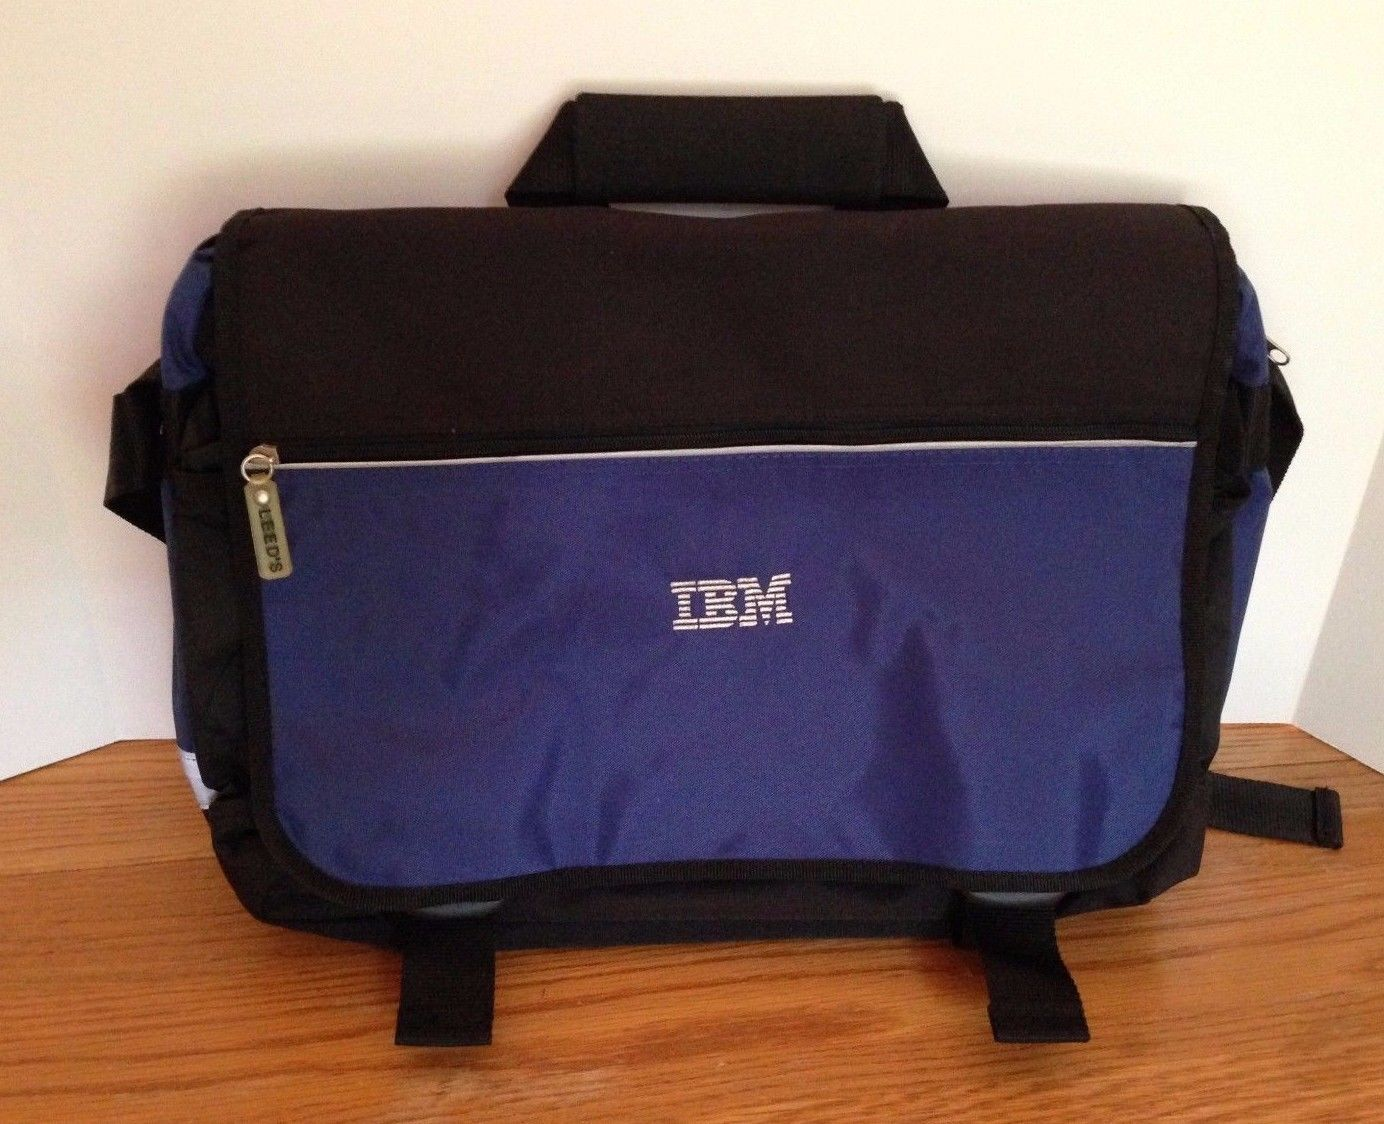 case ibm Shop ebay for great deals on ibm computer case you'll find new or used products in ibm computer case on ebay free shipping on selected items.